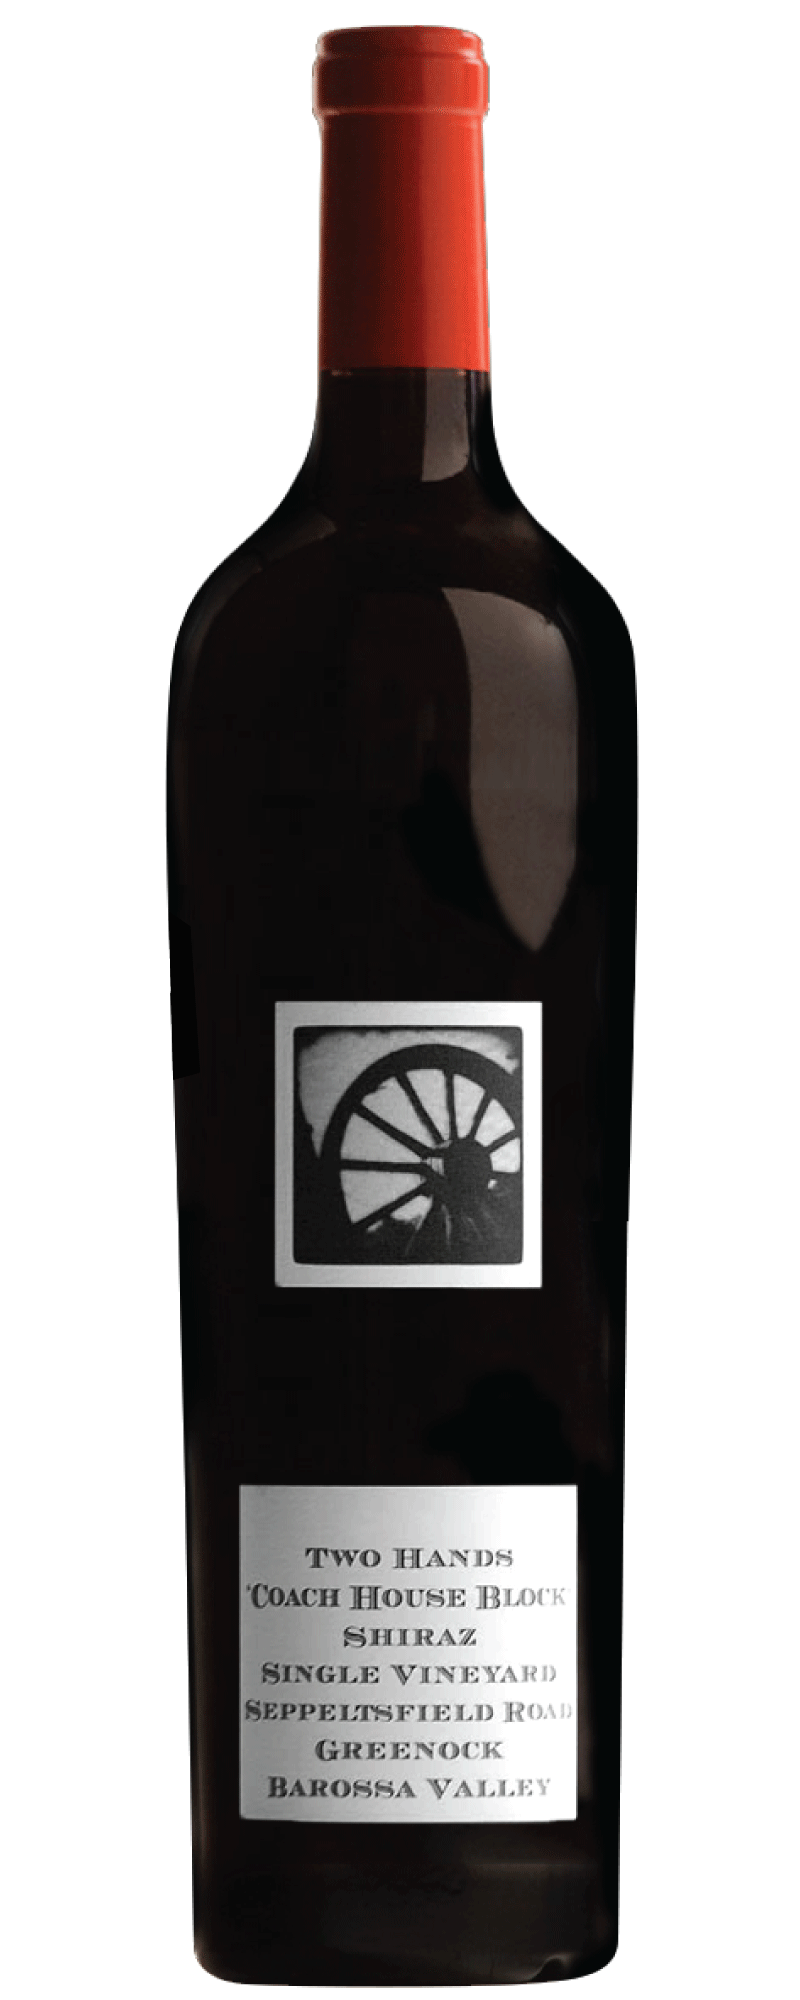 Two Hands 'Coach House Block' Shiraz 2008-0